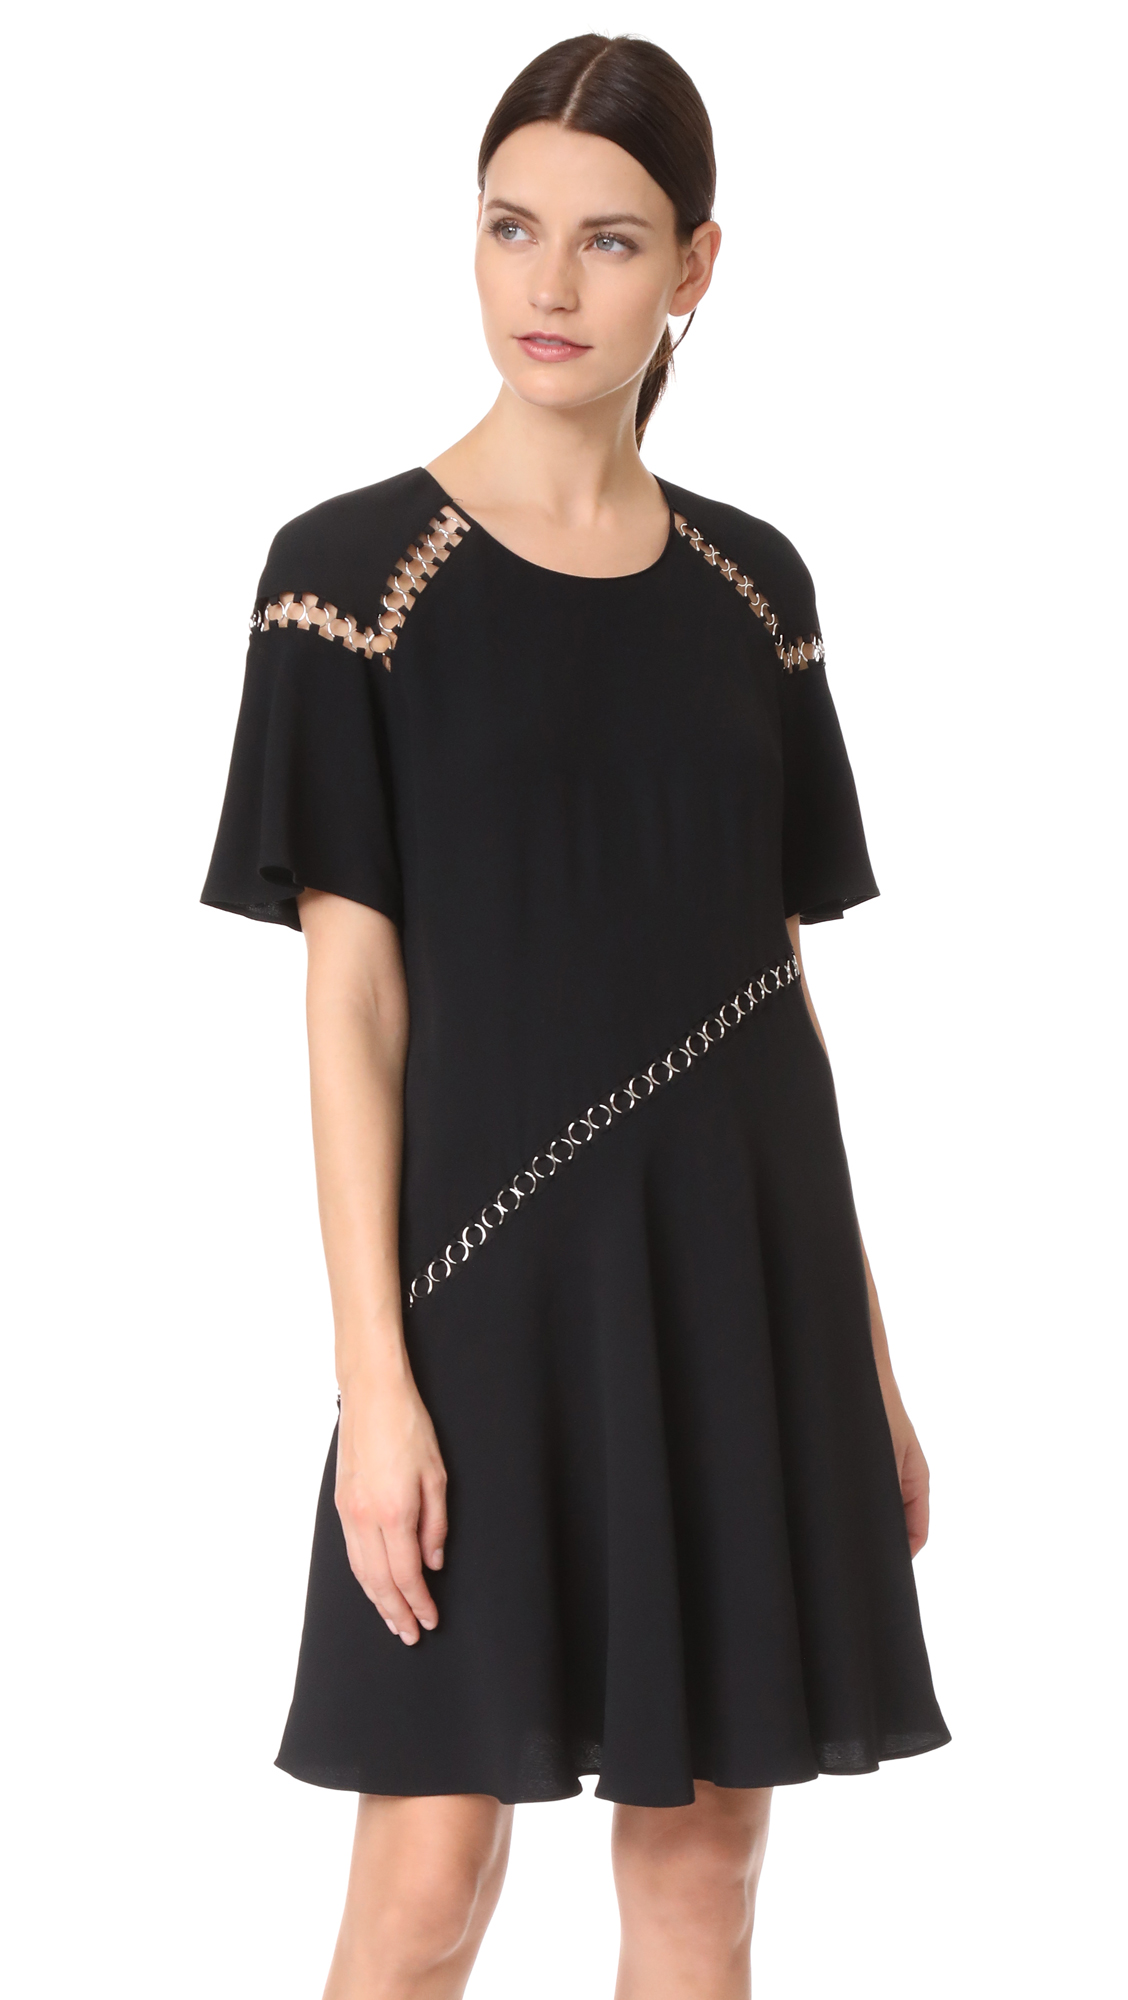 A.L.C. Mitchell Dress - Black